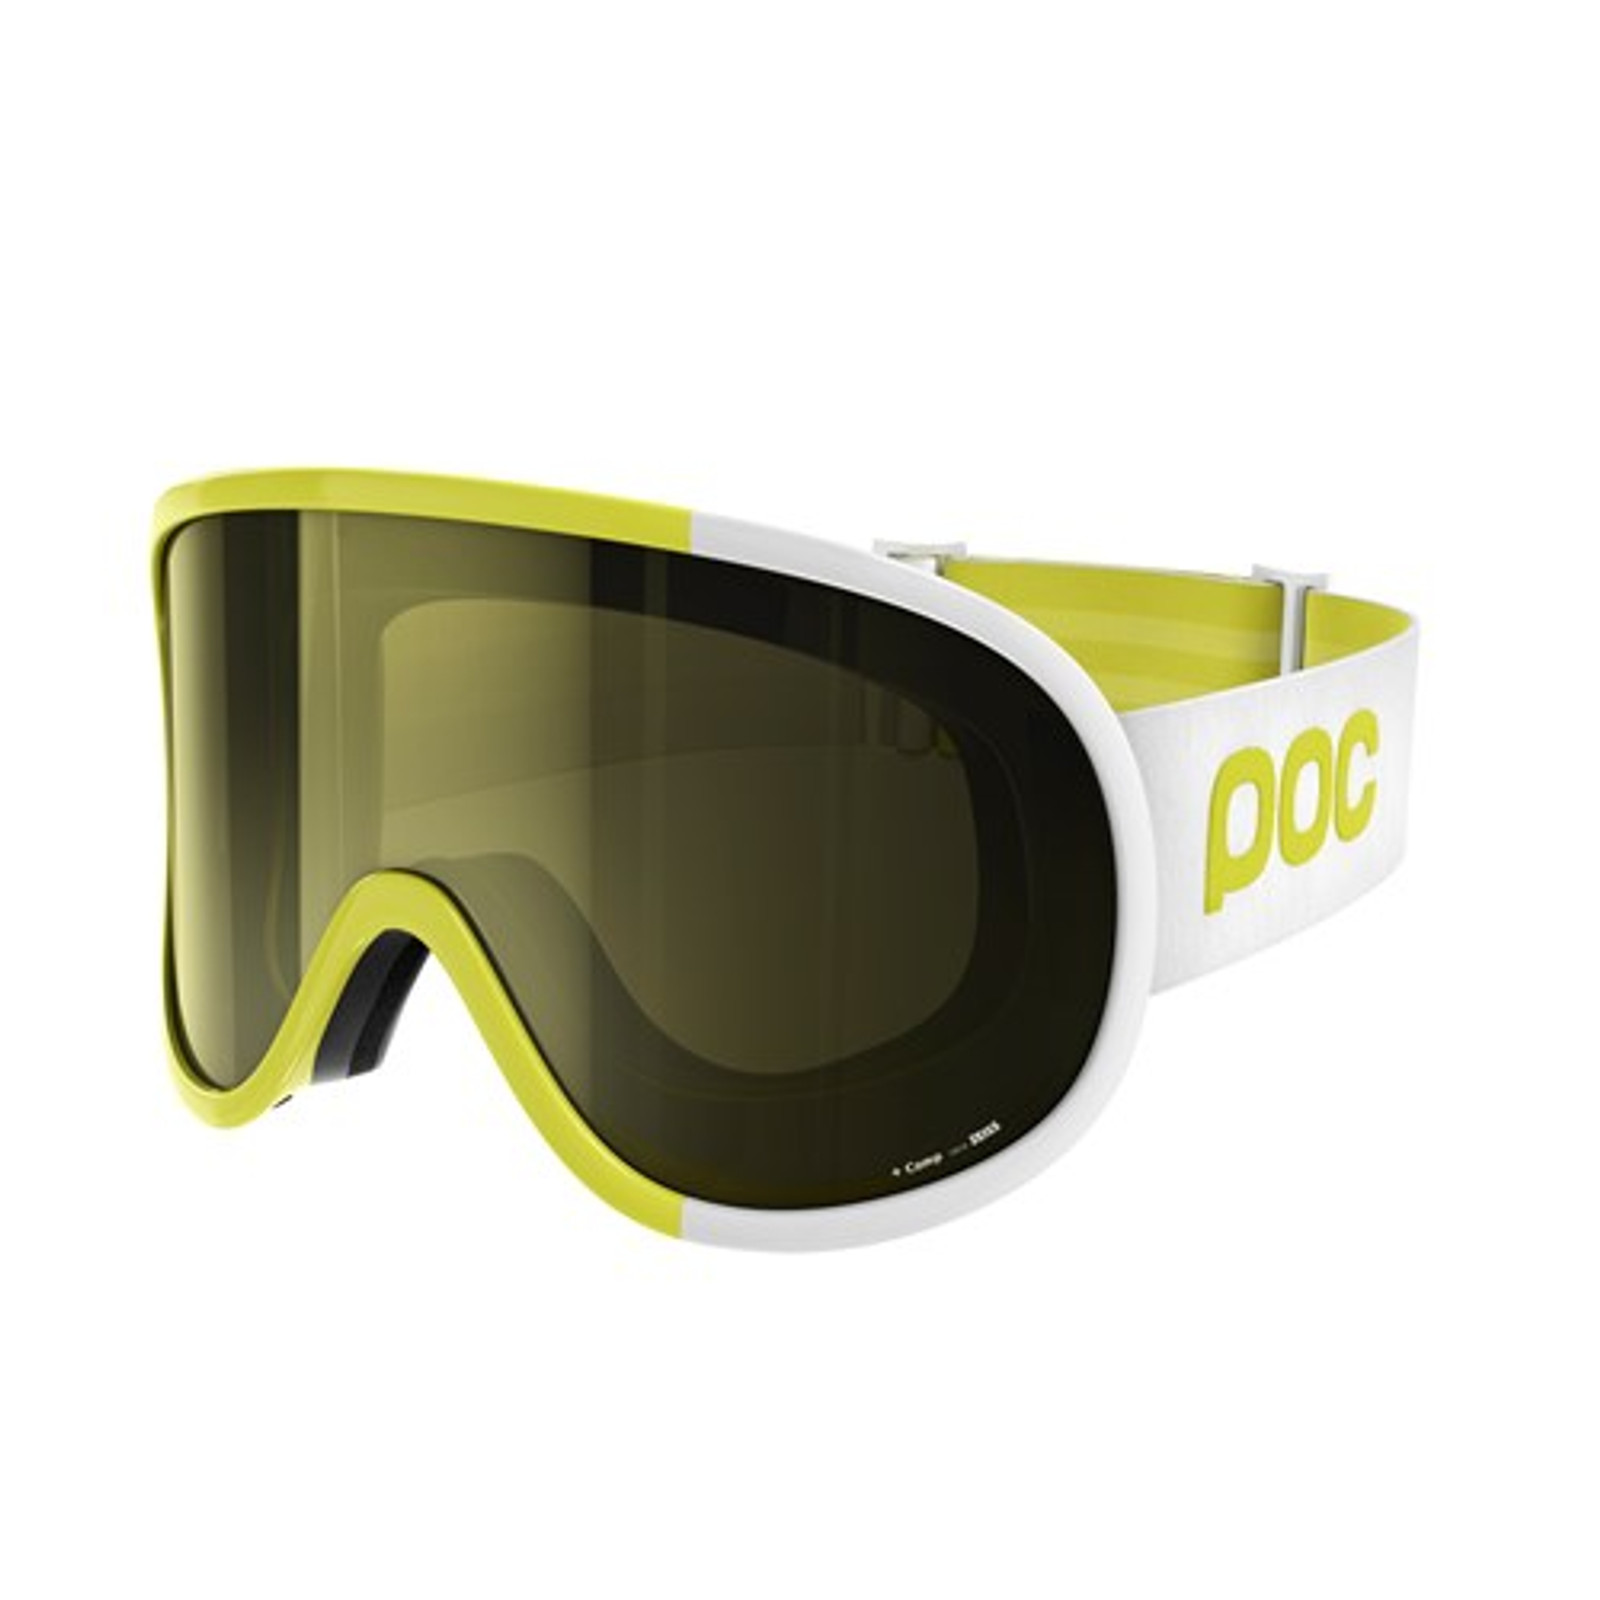 POC Retina Big Comp Goggles - Hexane Yellow